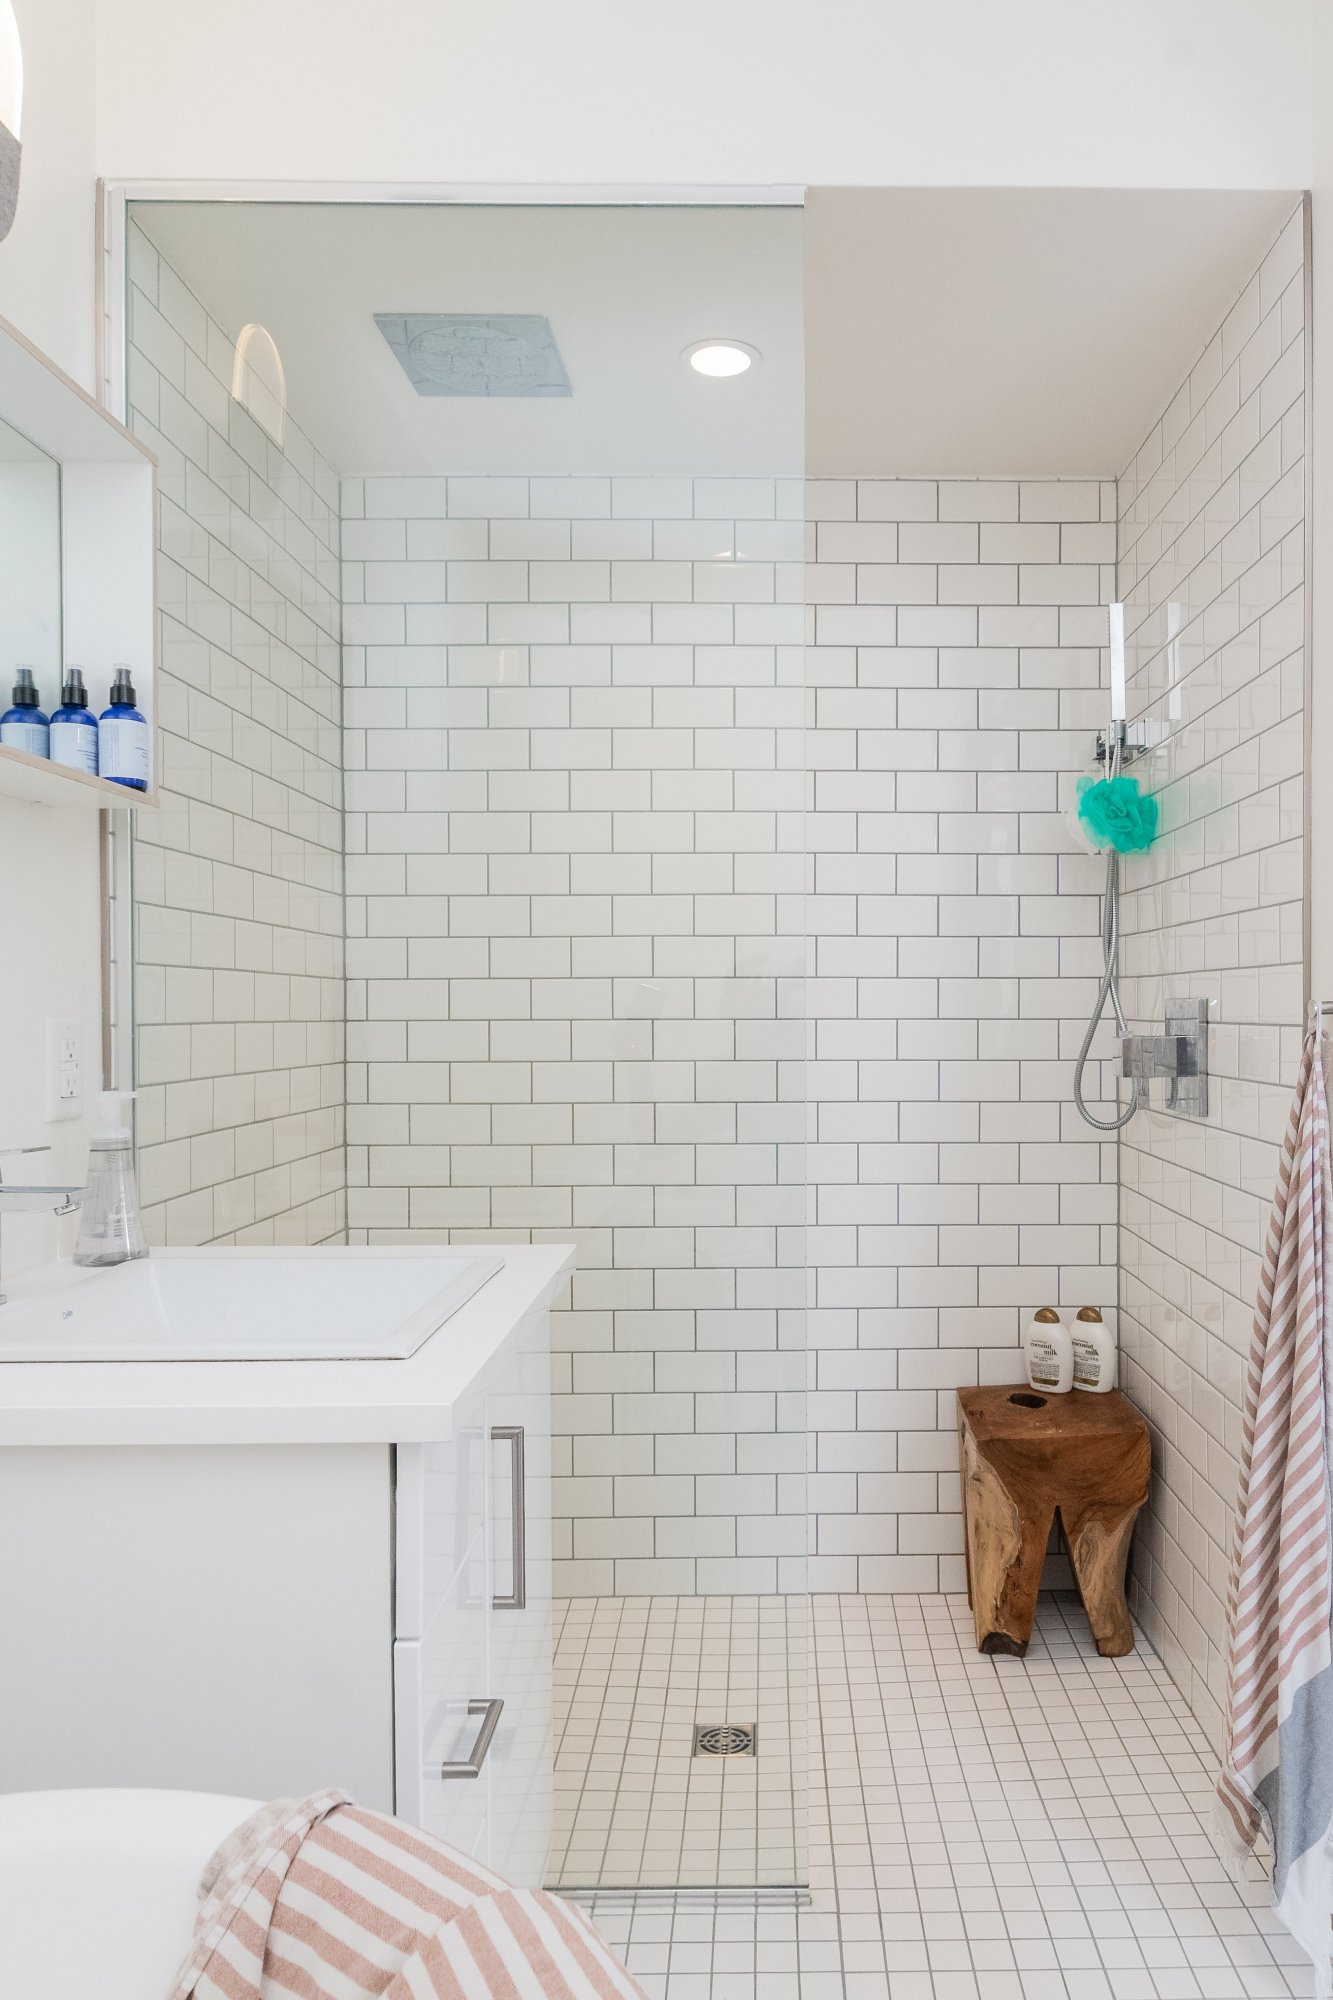 The days of waiting for water from your shower or tub to leak behind your walls are far behind us.